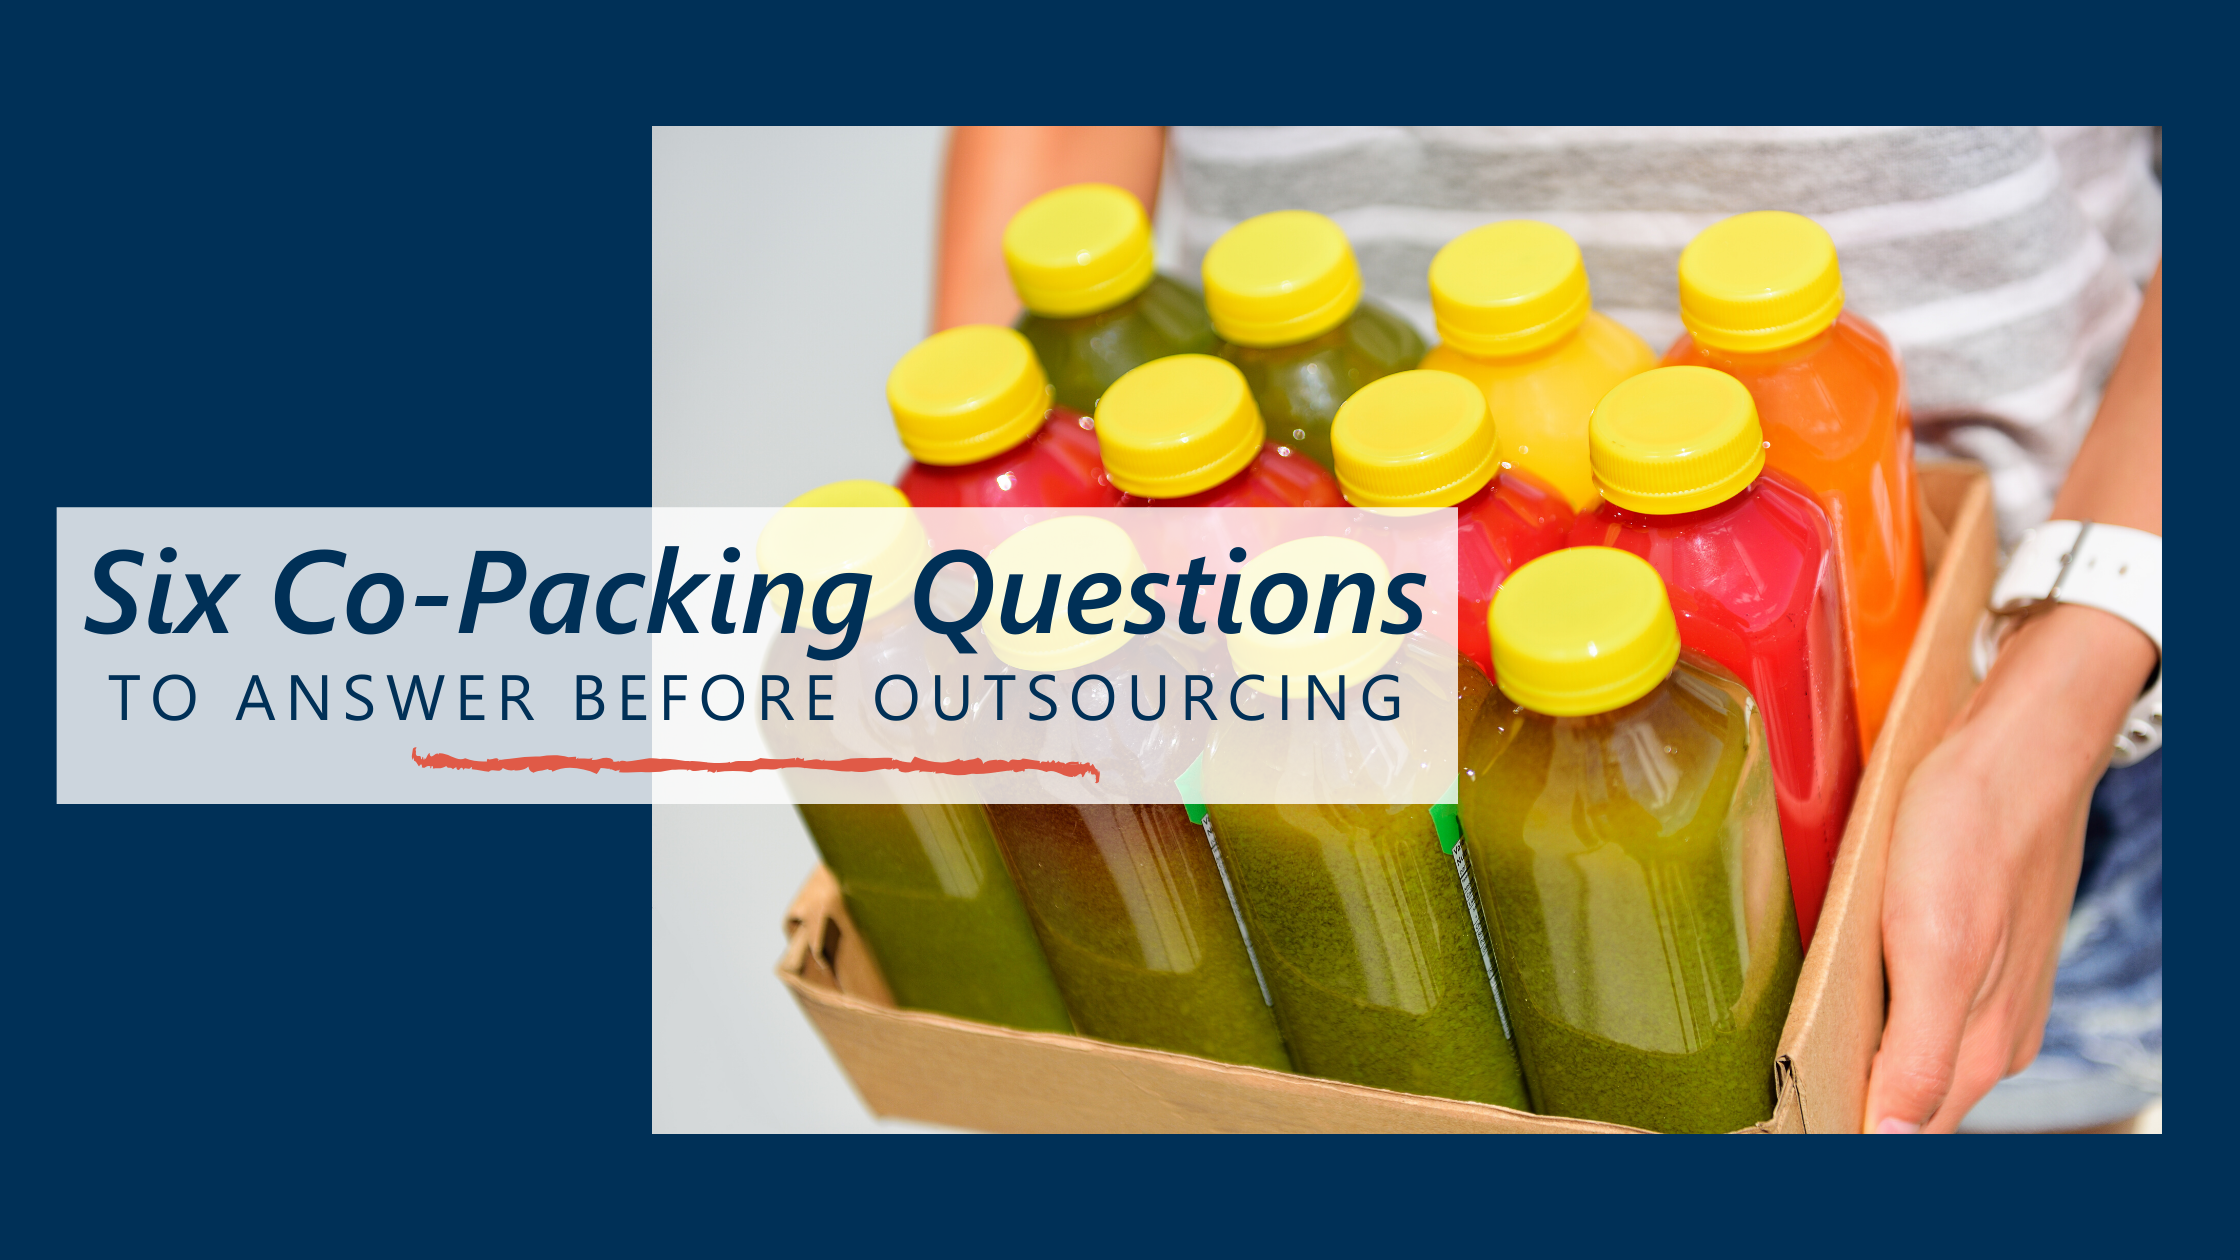 Six Co-Packing Questions